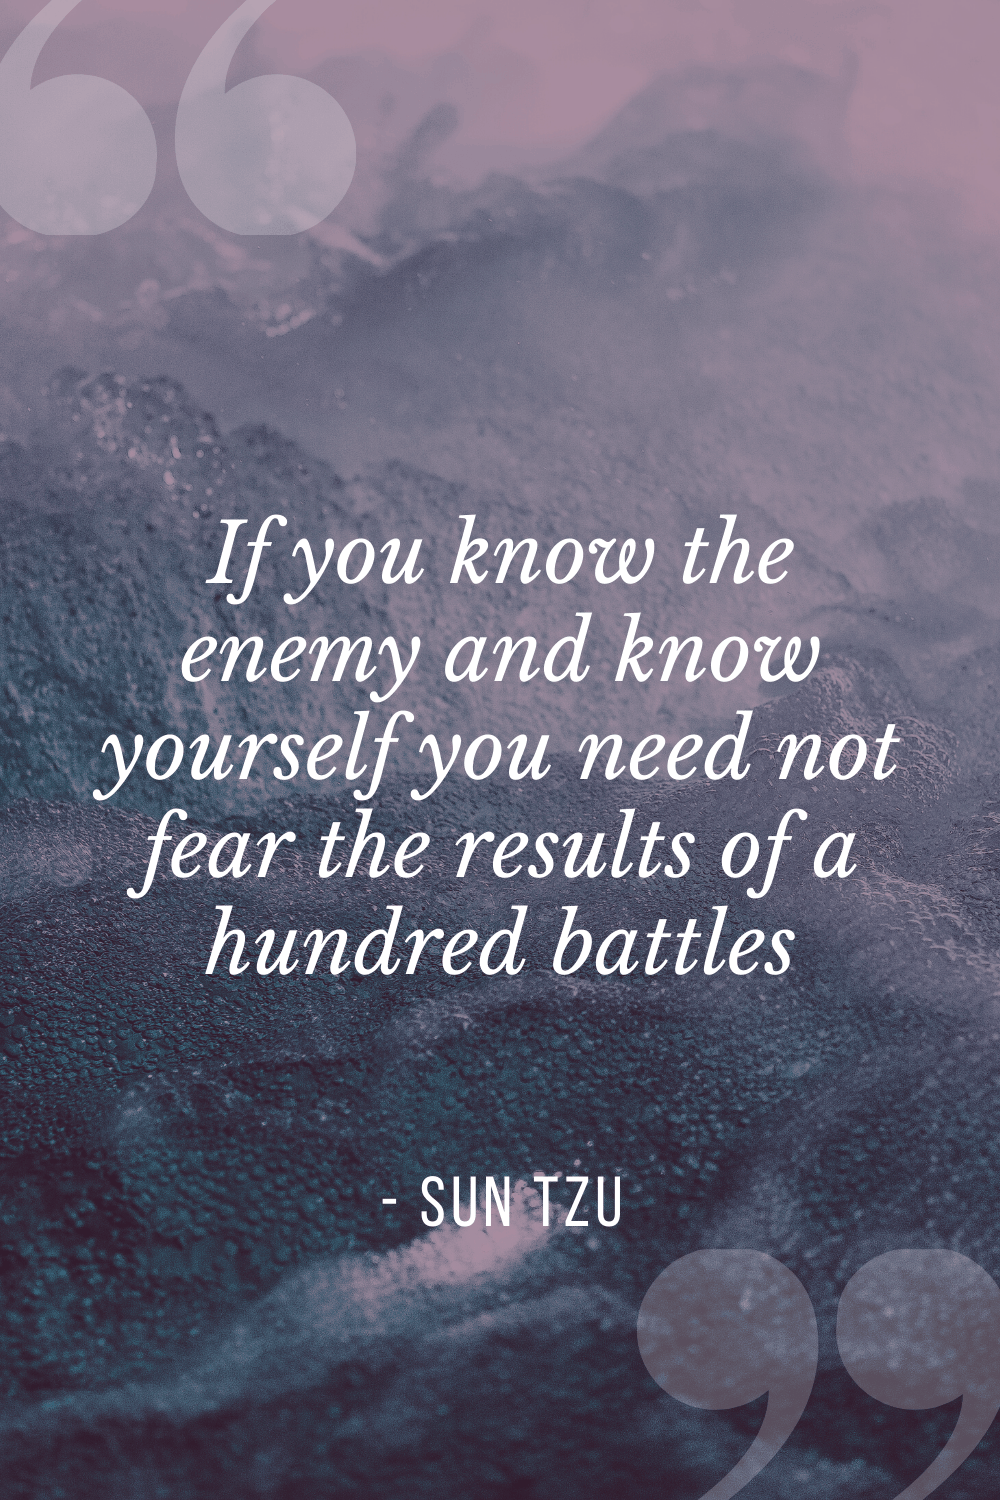 """If you know the enemy and know yourself you need not fear the results of a hundred battles"", Sun Tzu"